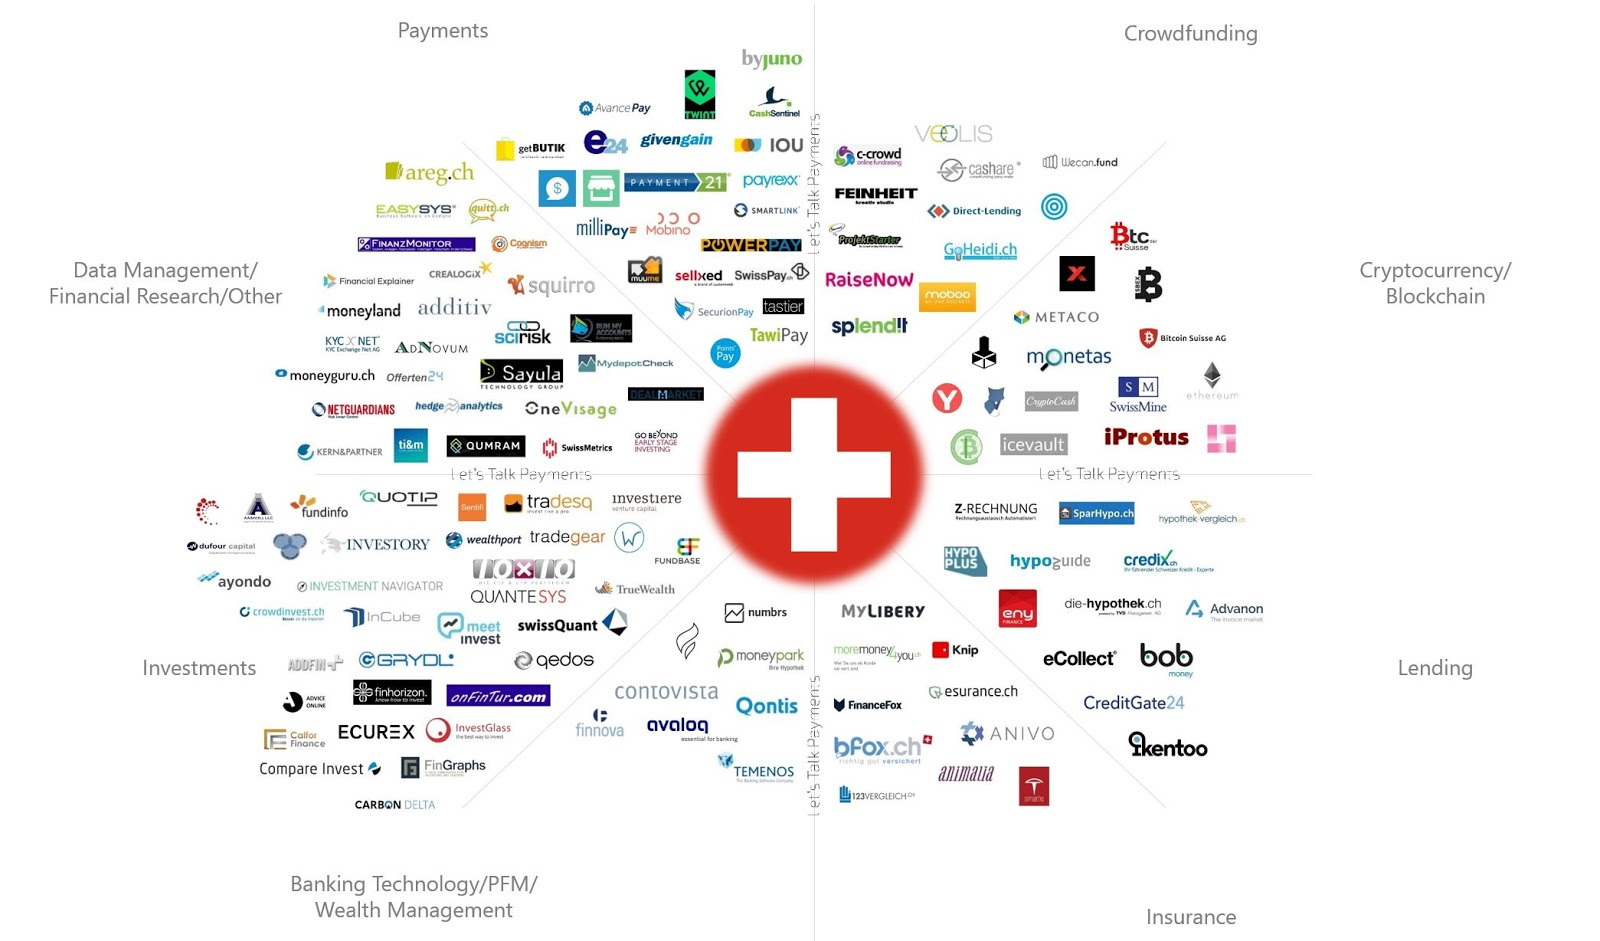 FinTech in Switzerland: A Quick Overview